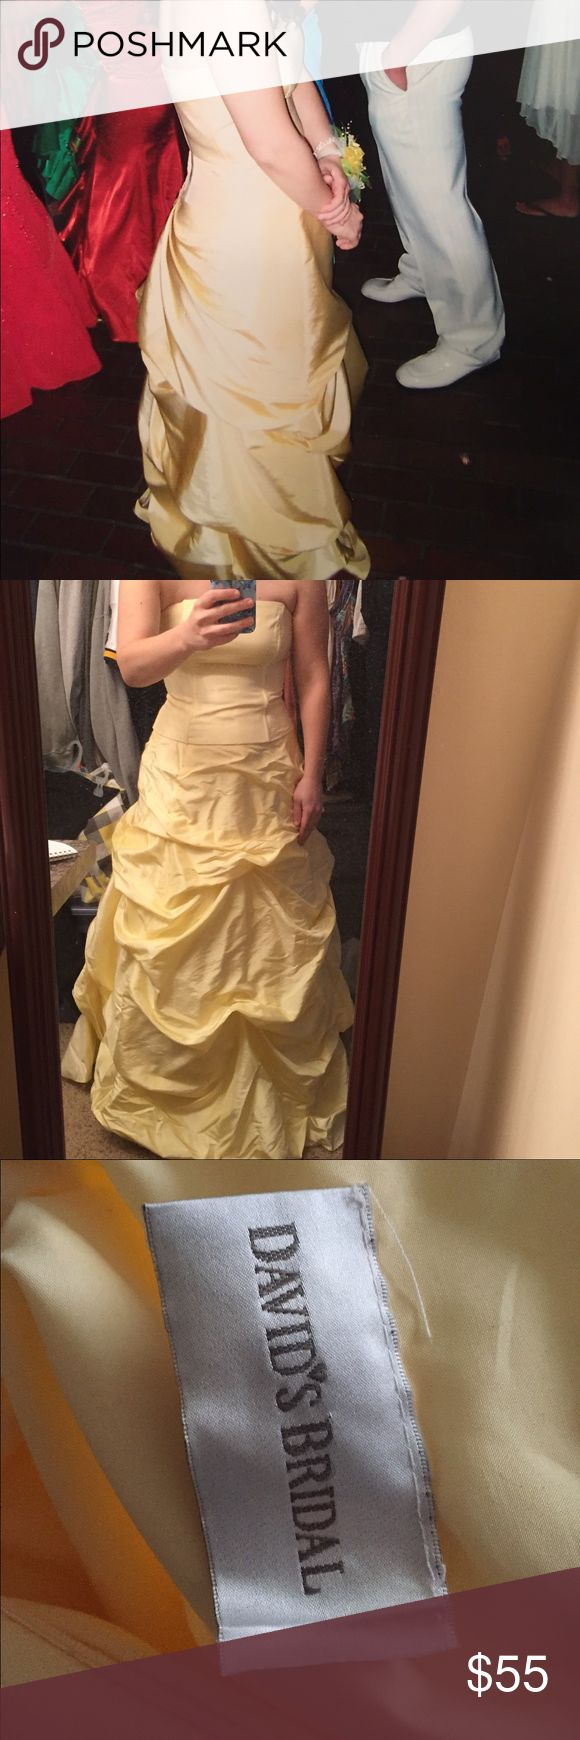 David's Bridal Canary Yellow Prom Dress 👗 Gently use David's Bridal strapless 2 piece prom dress for sale. Bottom is a size 10, top is a size 8. David's Bridal Dresses Prom